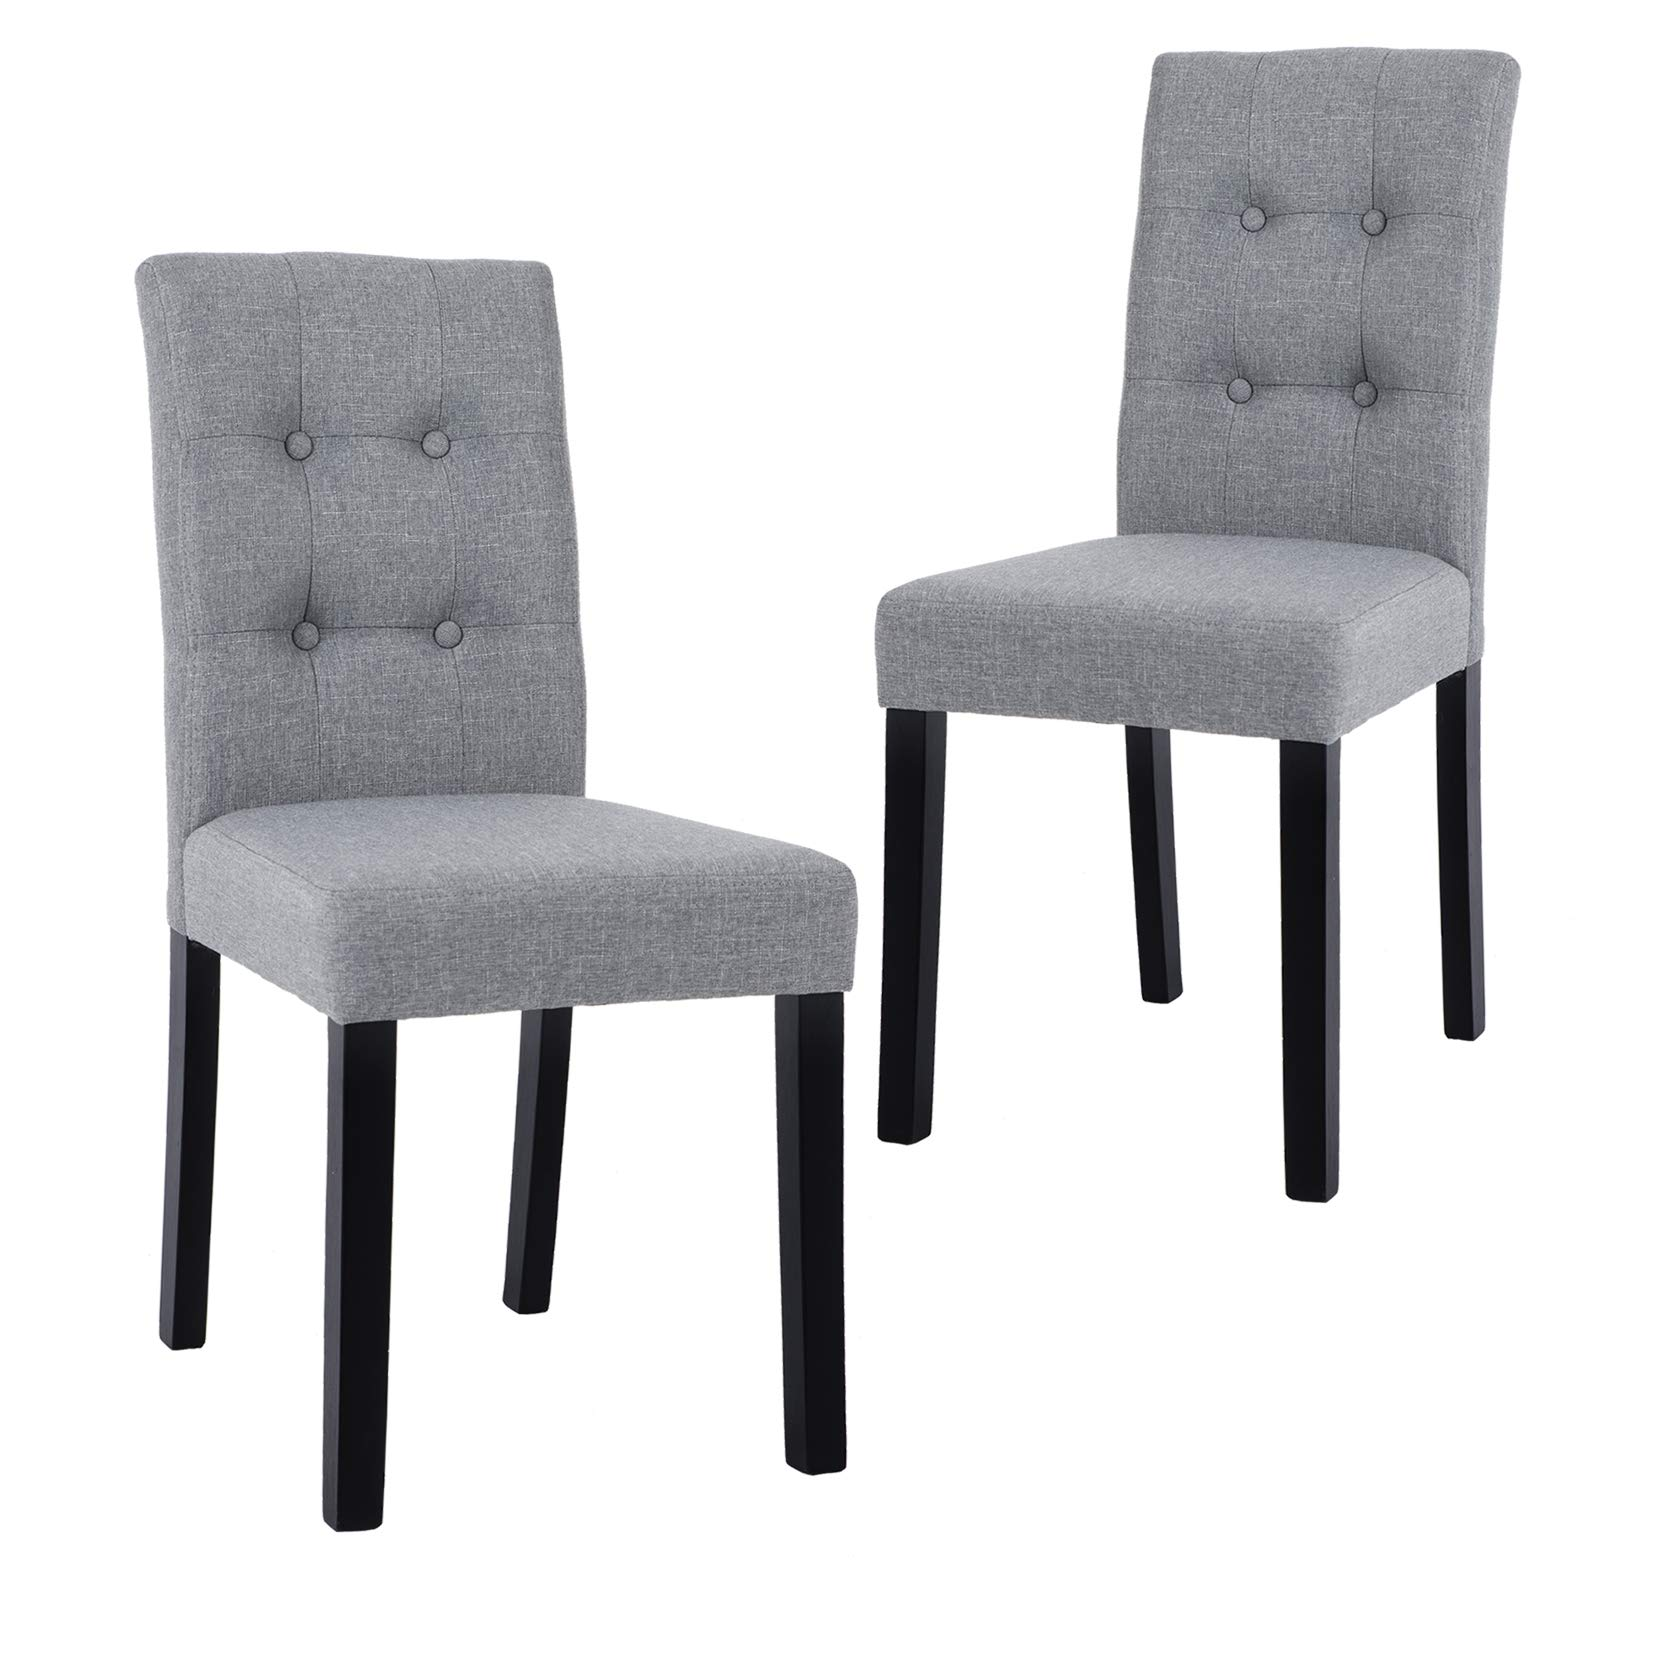 GOTMINSI Parsons Dining Chairs with Solid Natural Wood Legs Button-Tufted Chairs Set of 2(Gray)